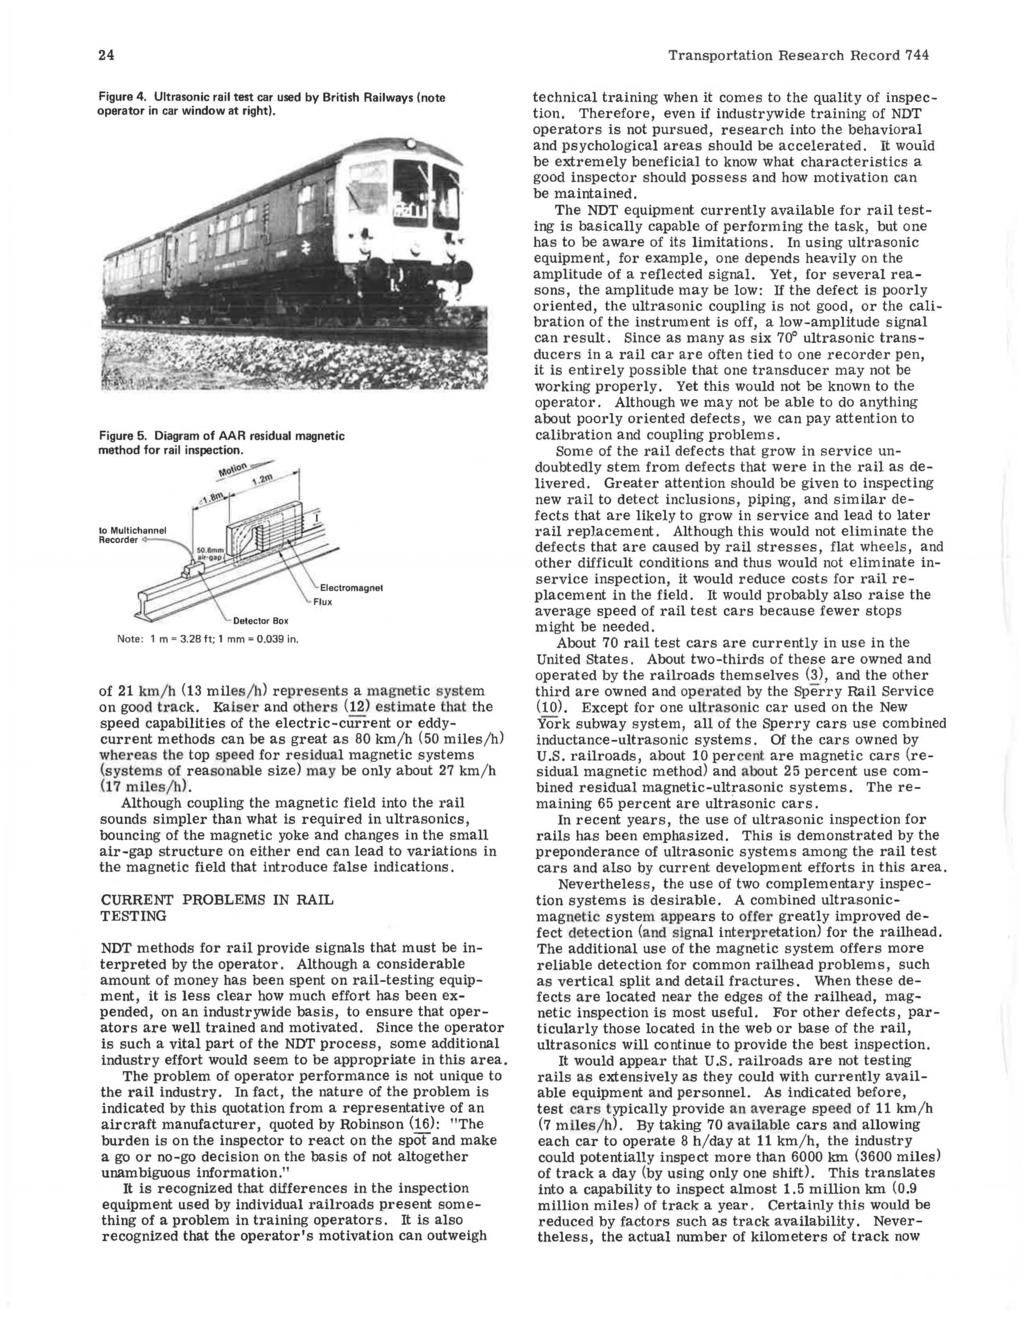 24 Figure 4. Ultrasonic rail test car used by British Railways (note operator in car window at right). Figure 5. Diagram of AAR residual magnetic method for rail inspection. Note: 1 m = 3.